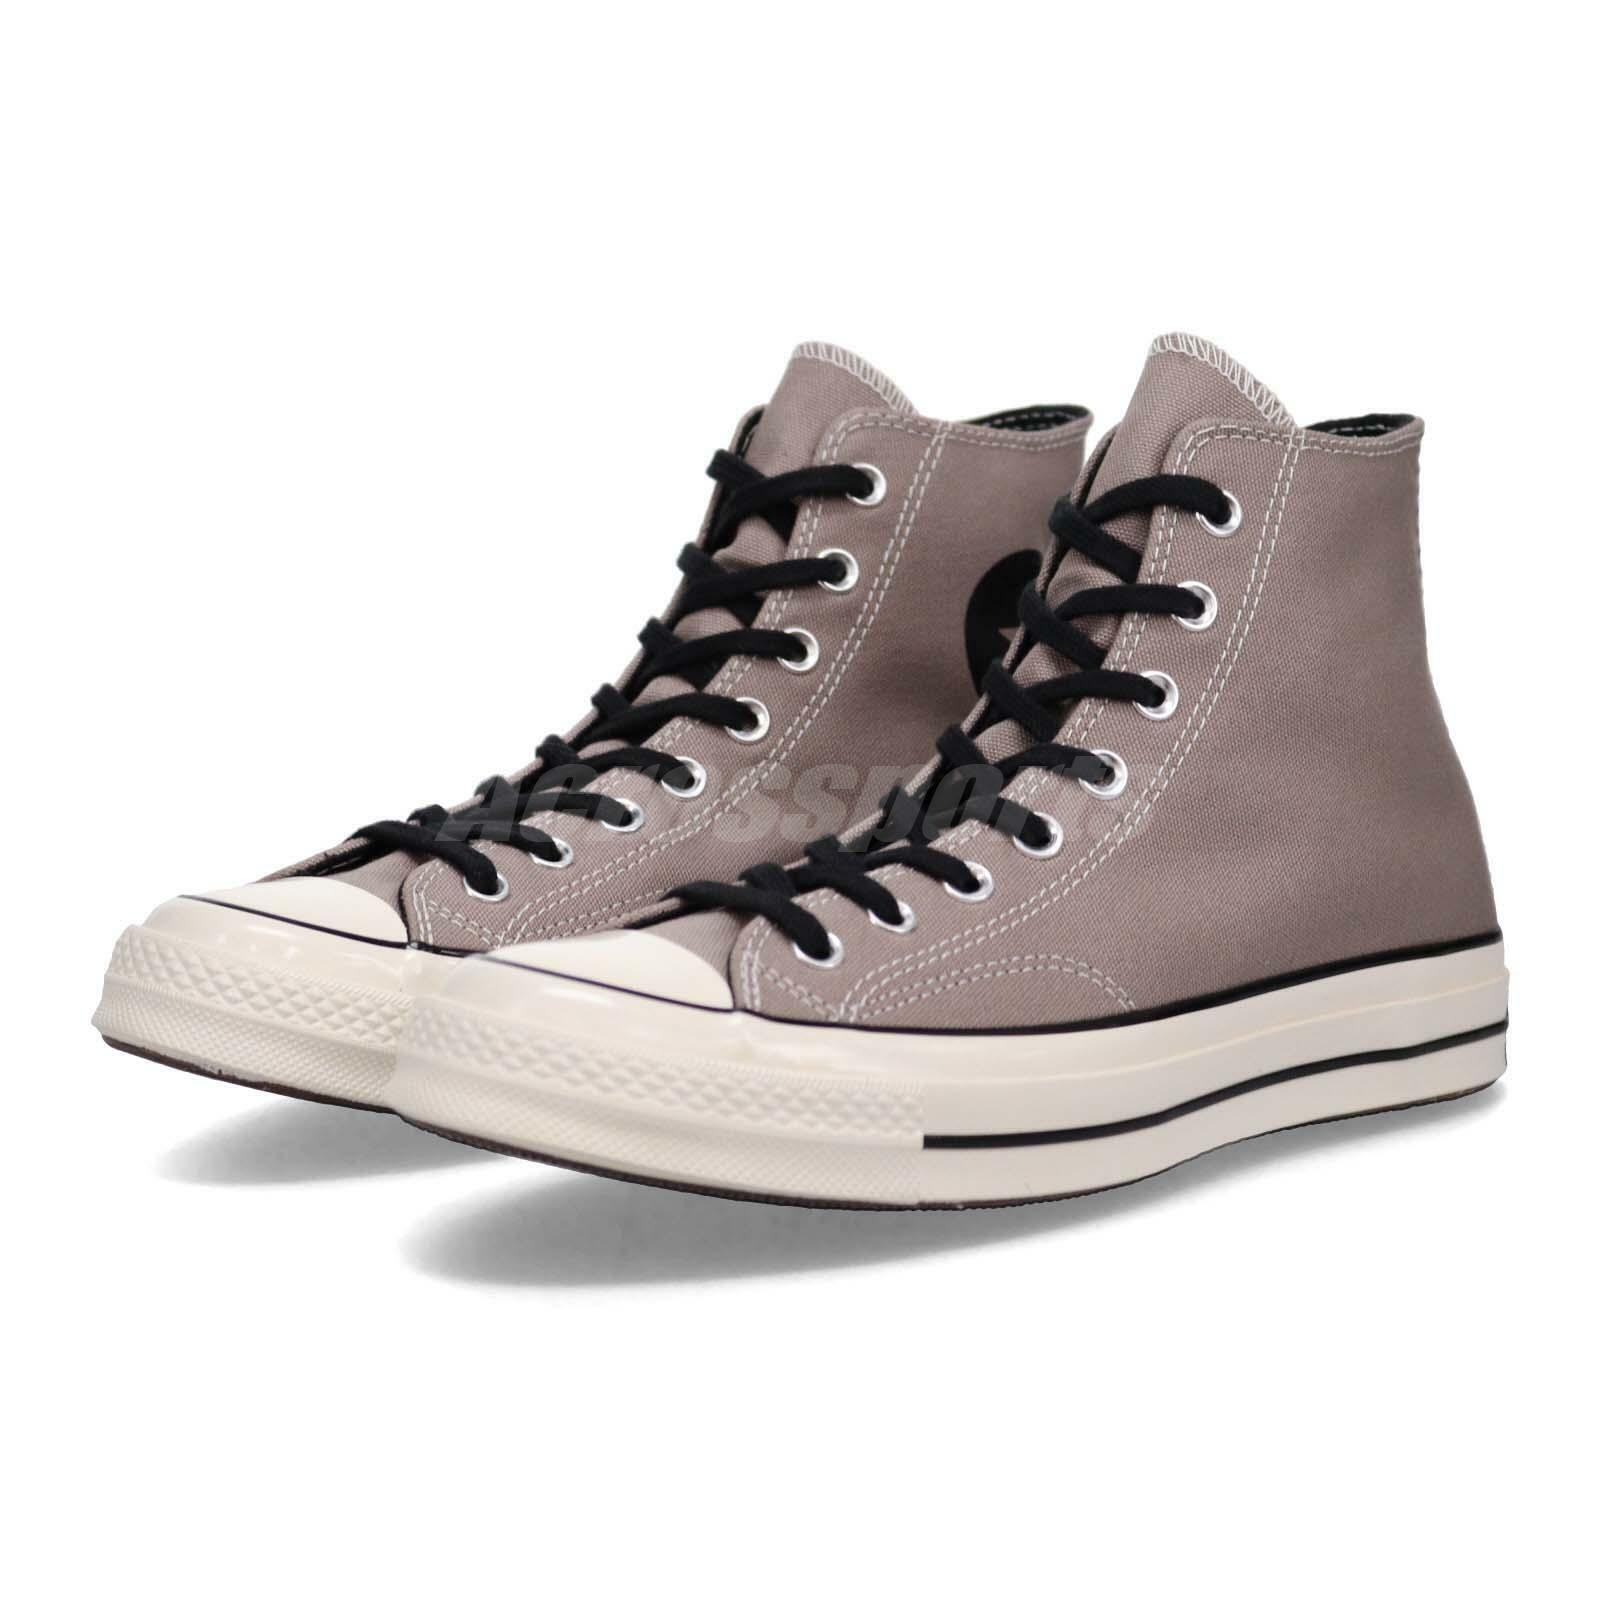 Converse First String Chuck Taylor All Star 70 gris Men mujer zapatos 163333C